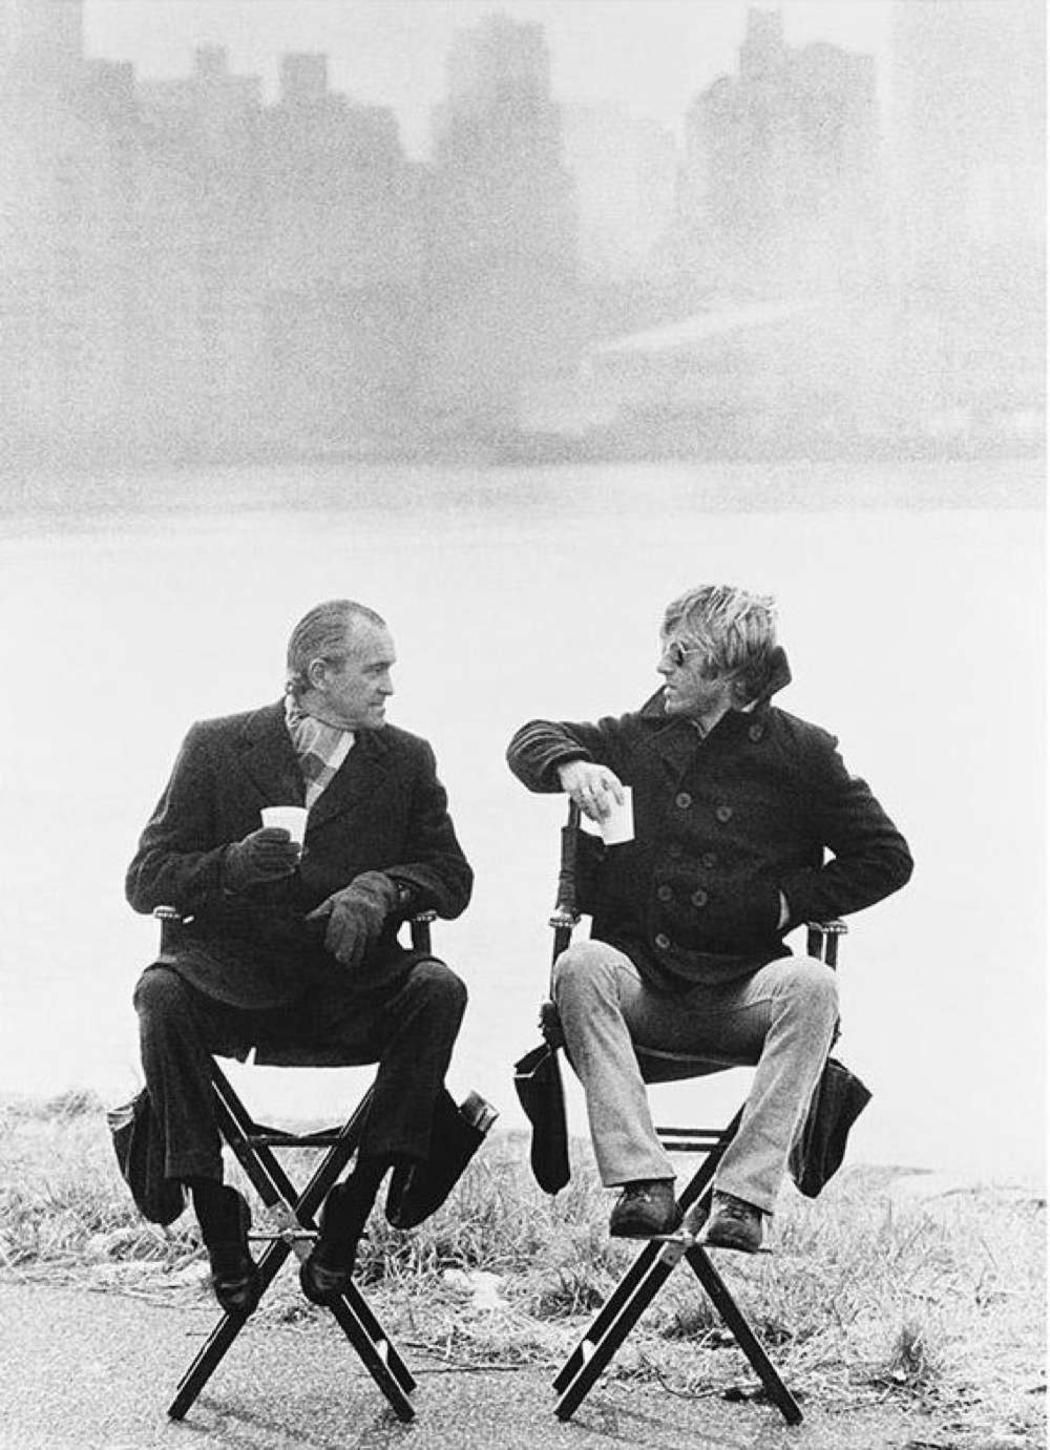 Richard Helms with Robert Redford on the set of the film Three Days of a Condor